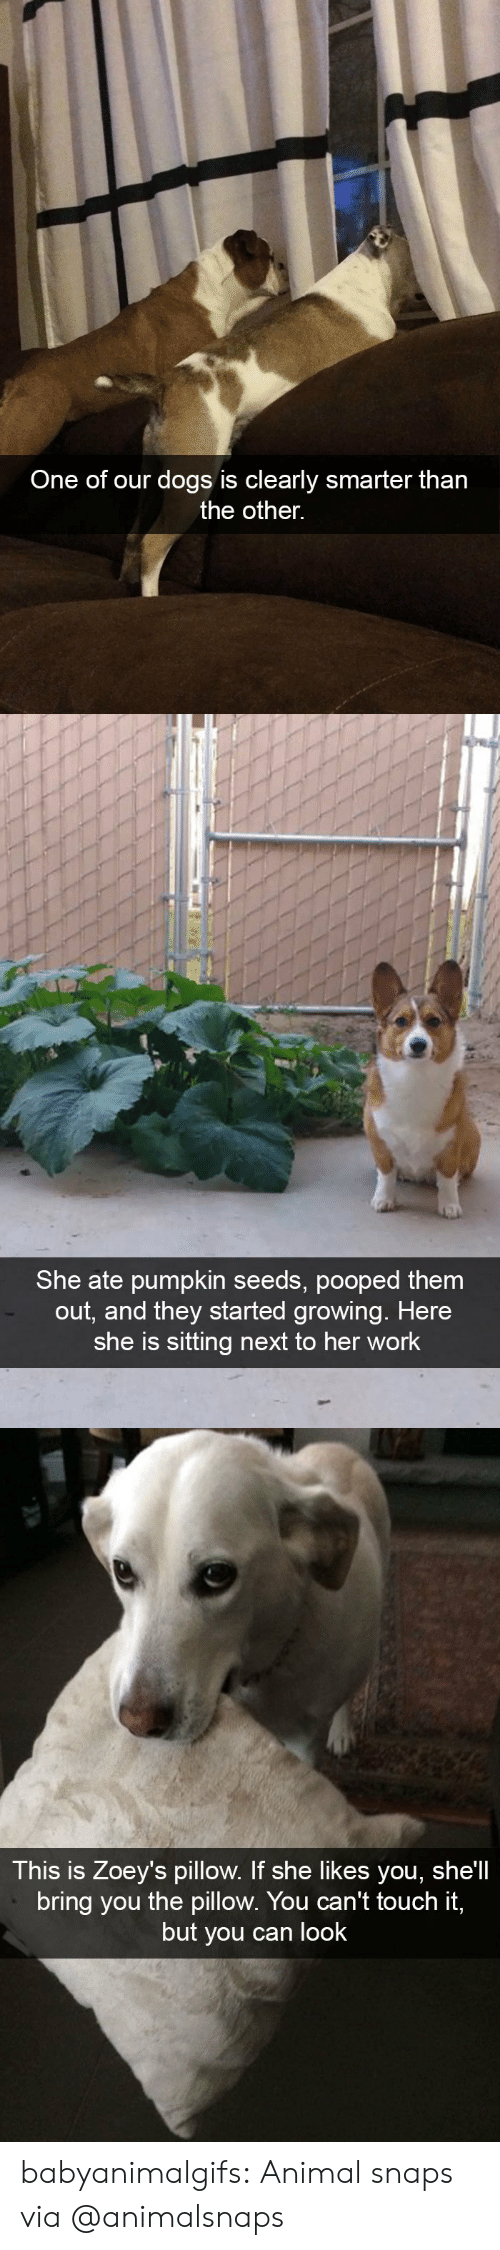 Dogs, Tumblr, and Work: One of our dogs is clearly smarter tharn  the other.   She ate pumpkin seeds, pooped them  out, and they started growing. Here  she is sitting next to her work   This is Zoey's pillow. If she likes you, she'll  bring you the pillow. You can't touch it,  but you can look babyanimalgifs: Animal snaps via @animalsnaps